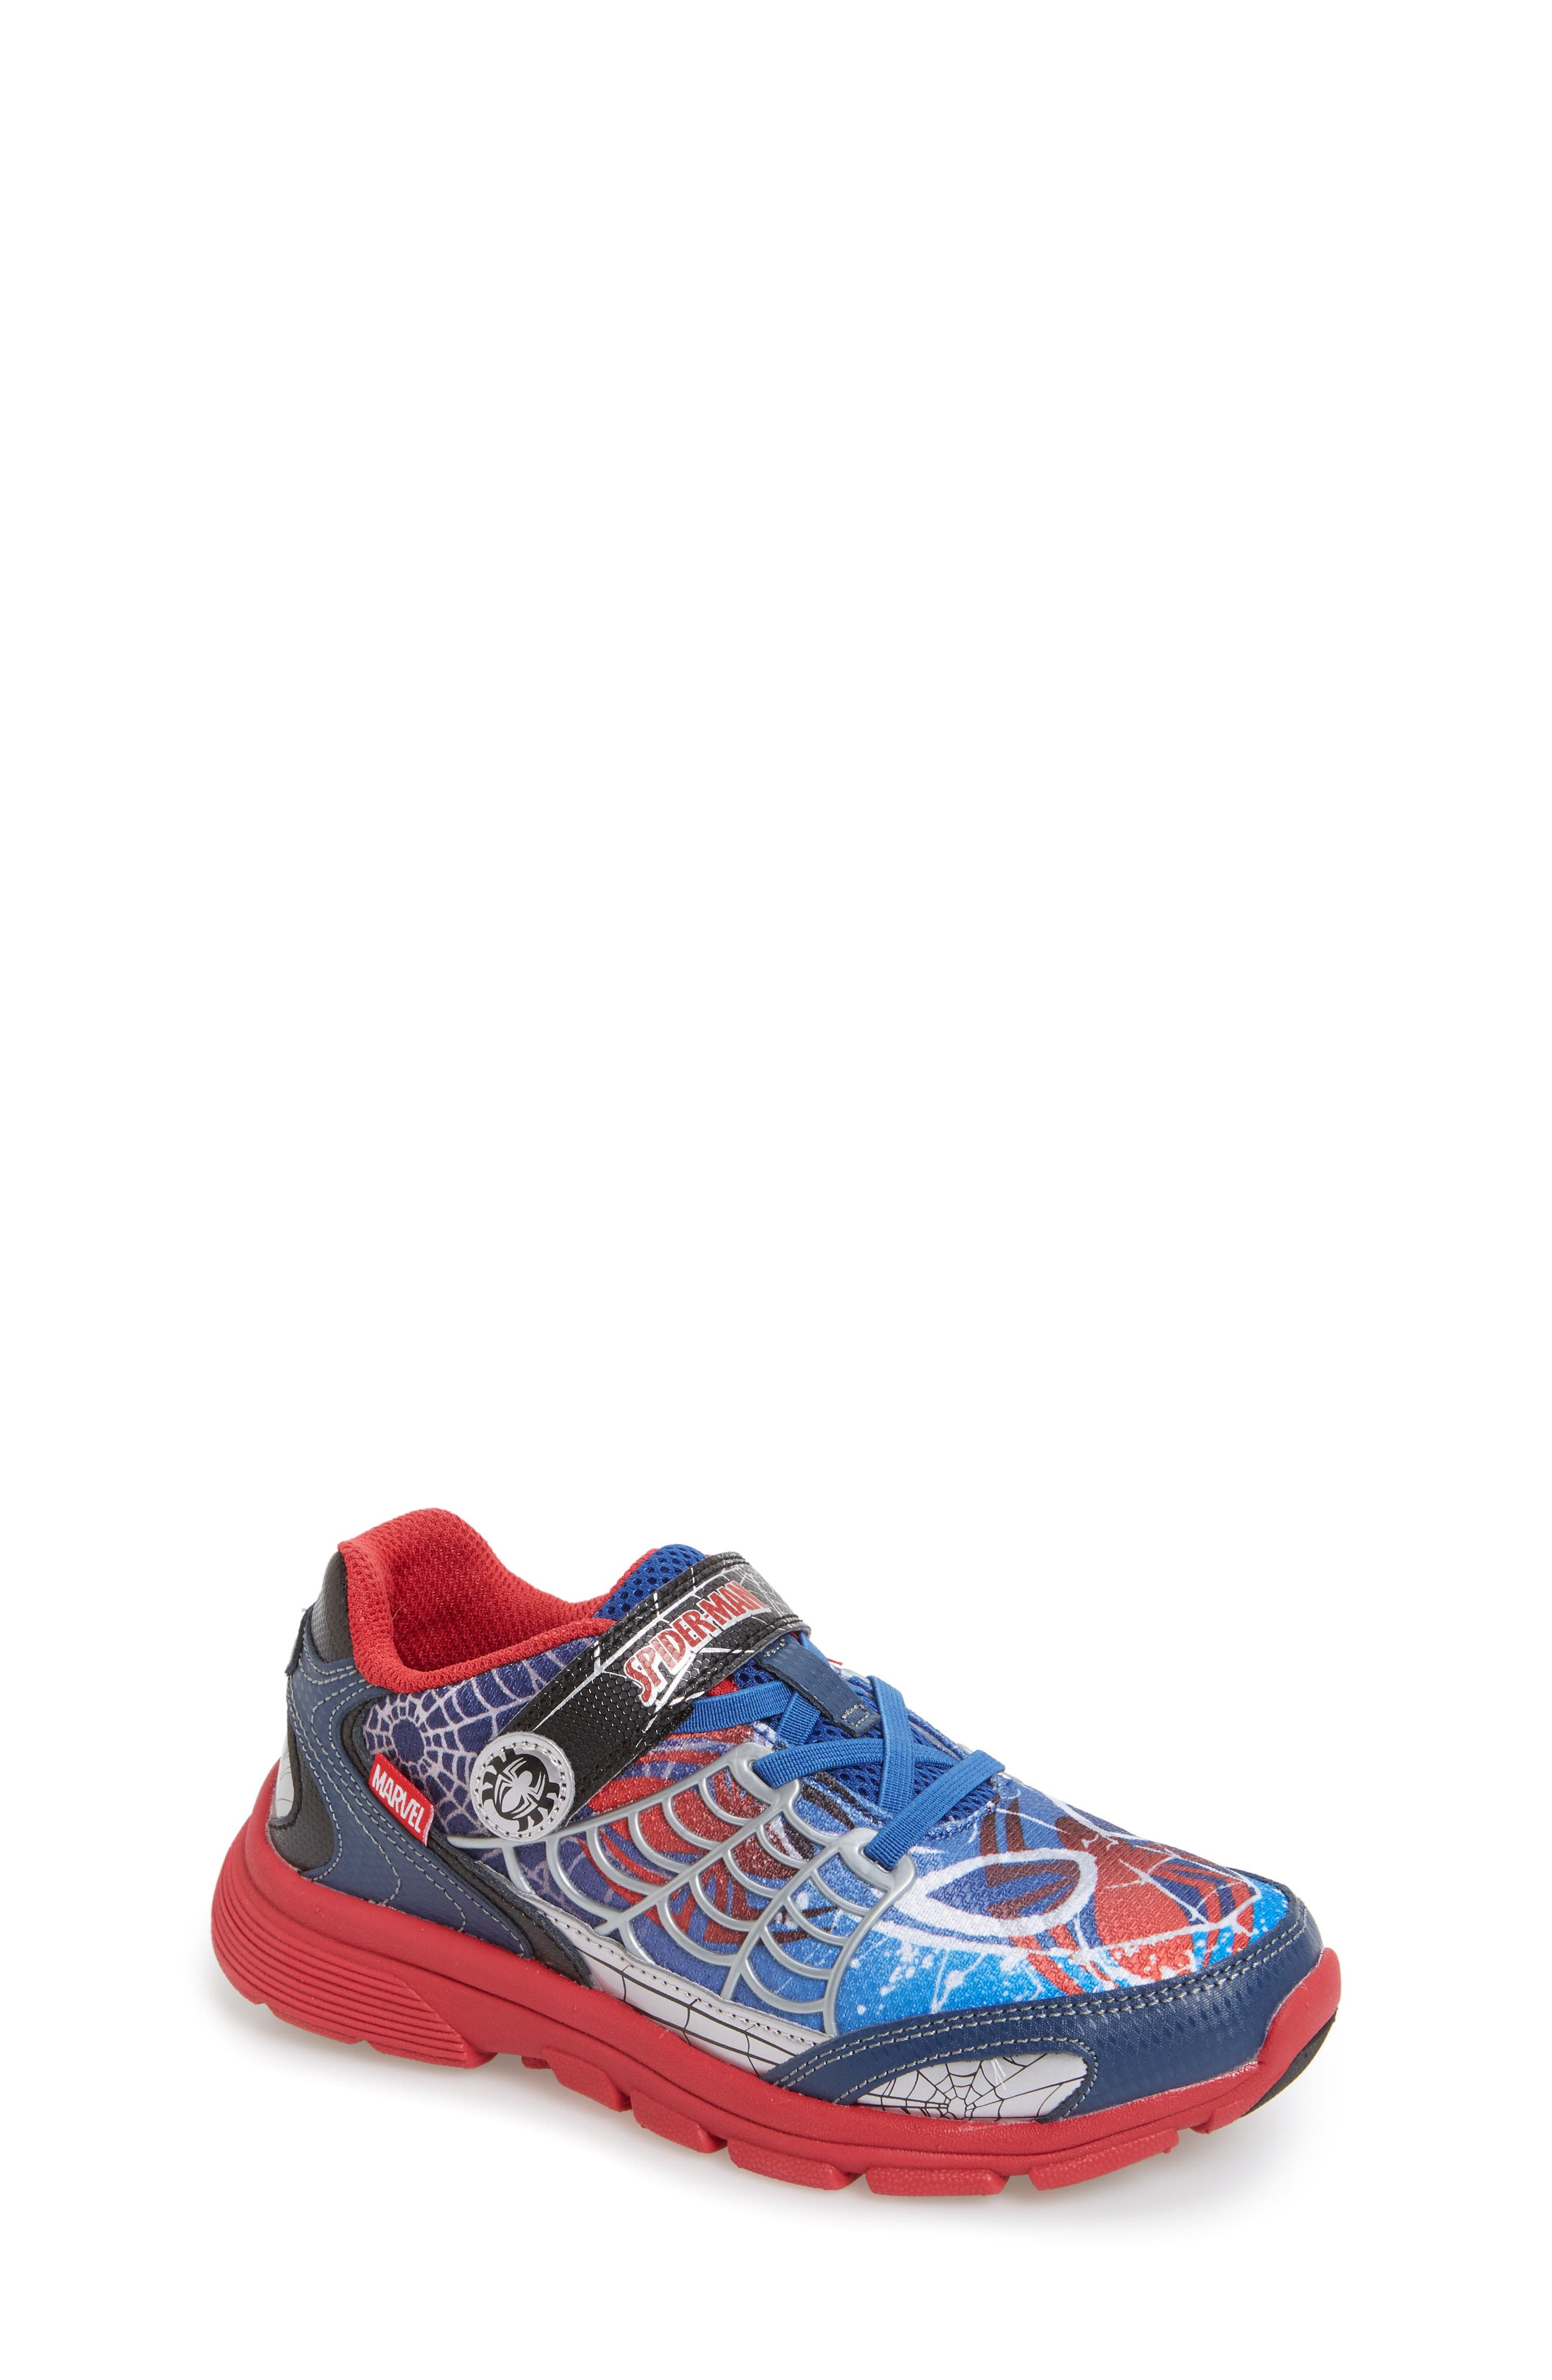 Spidey Sense Light-Up Sneaker,                         Main,                         color, Blue/ Red